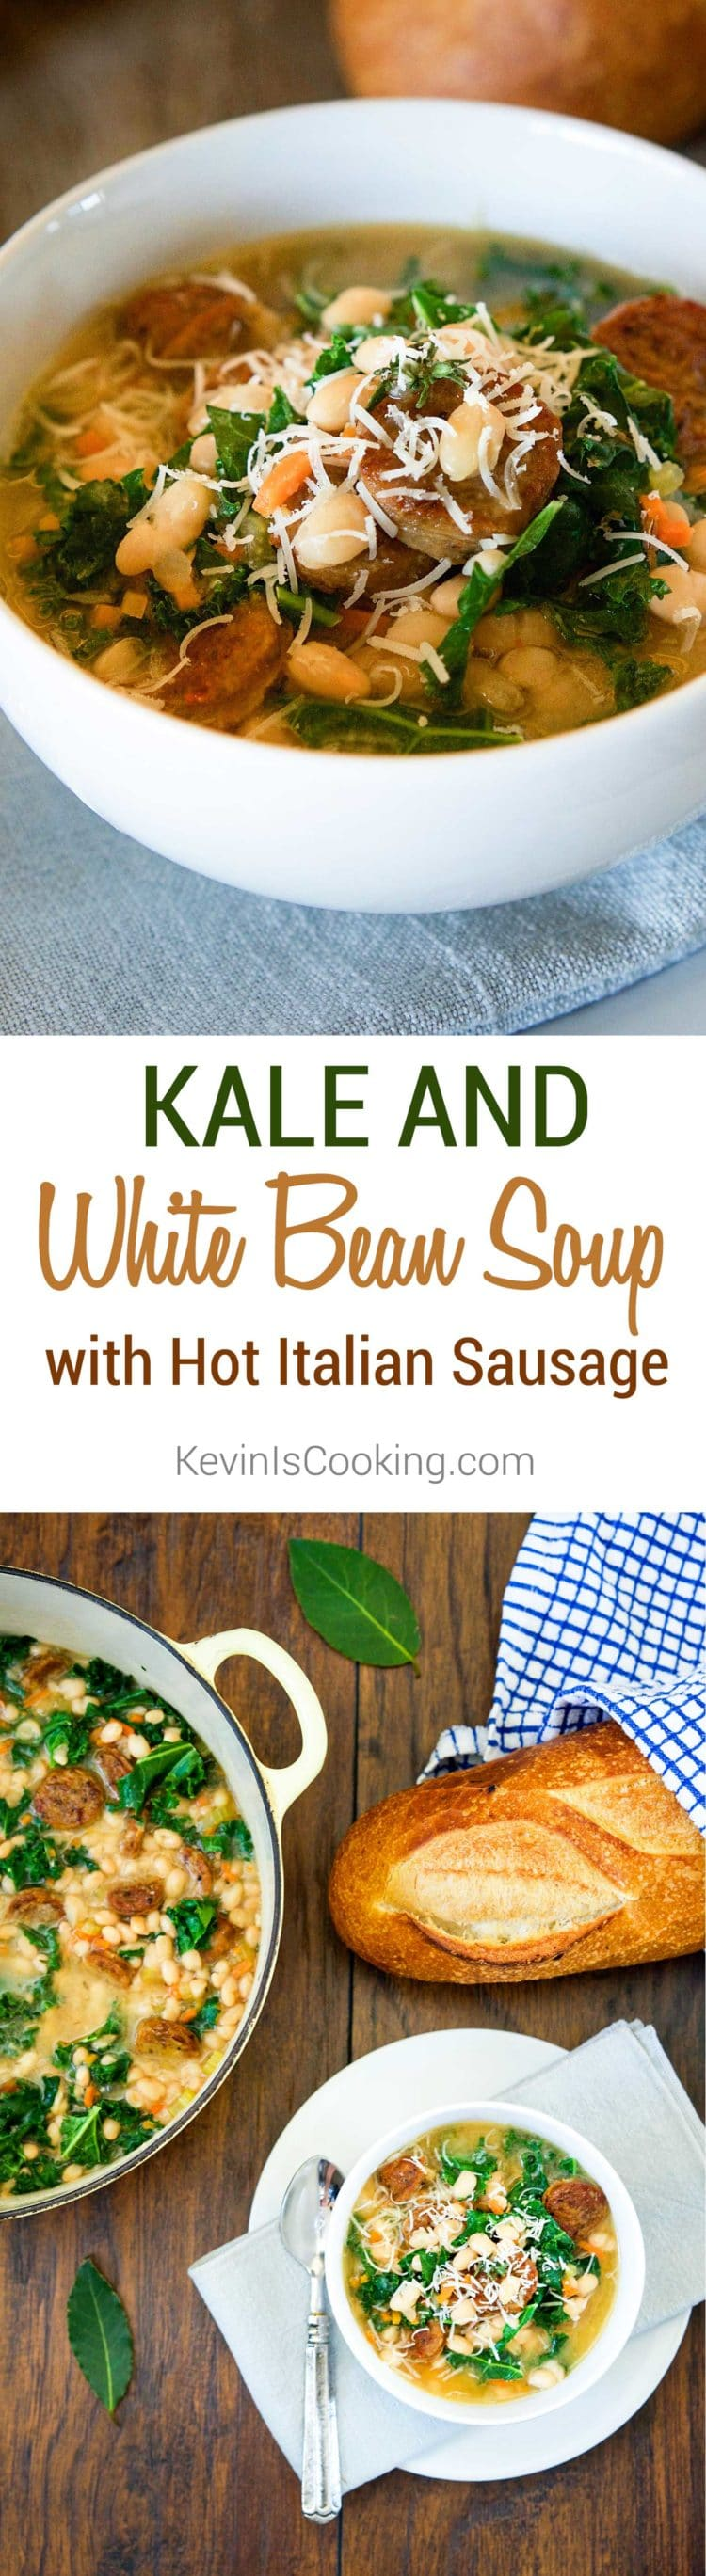 Kale and White Bean Soup with Sausage. www.keviniscooking.com